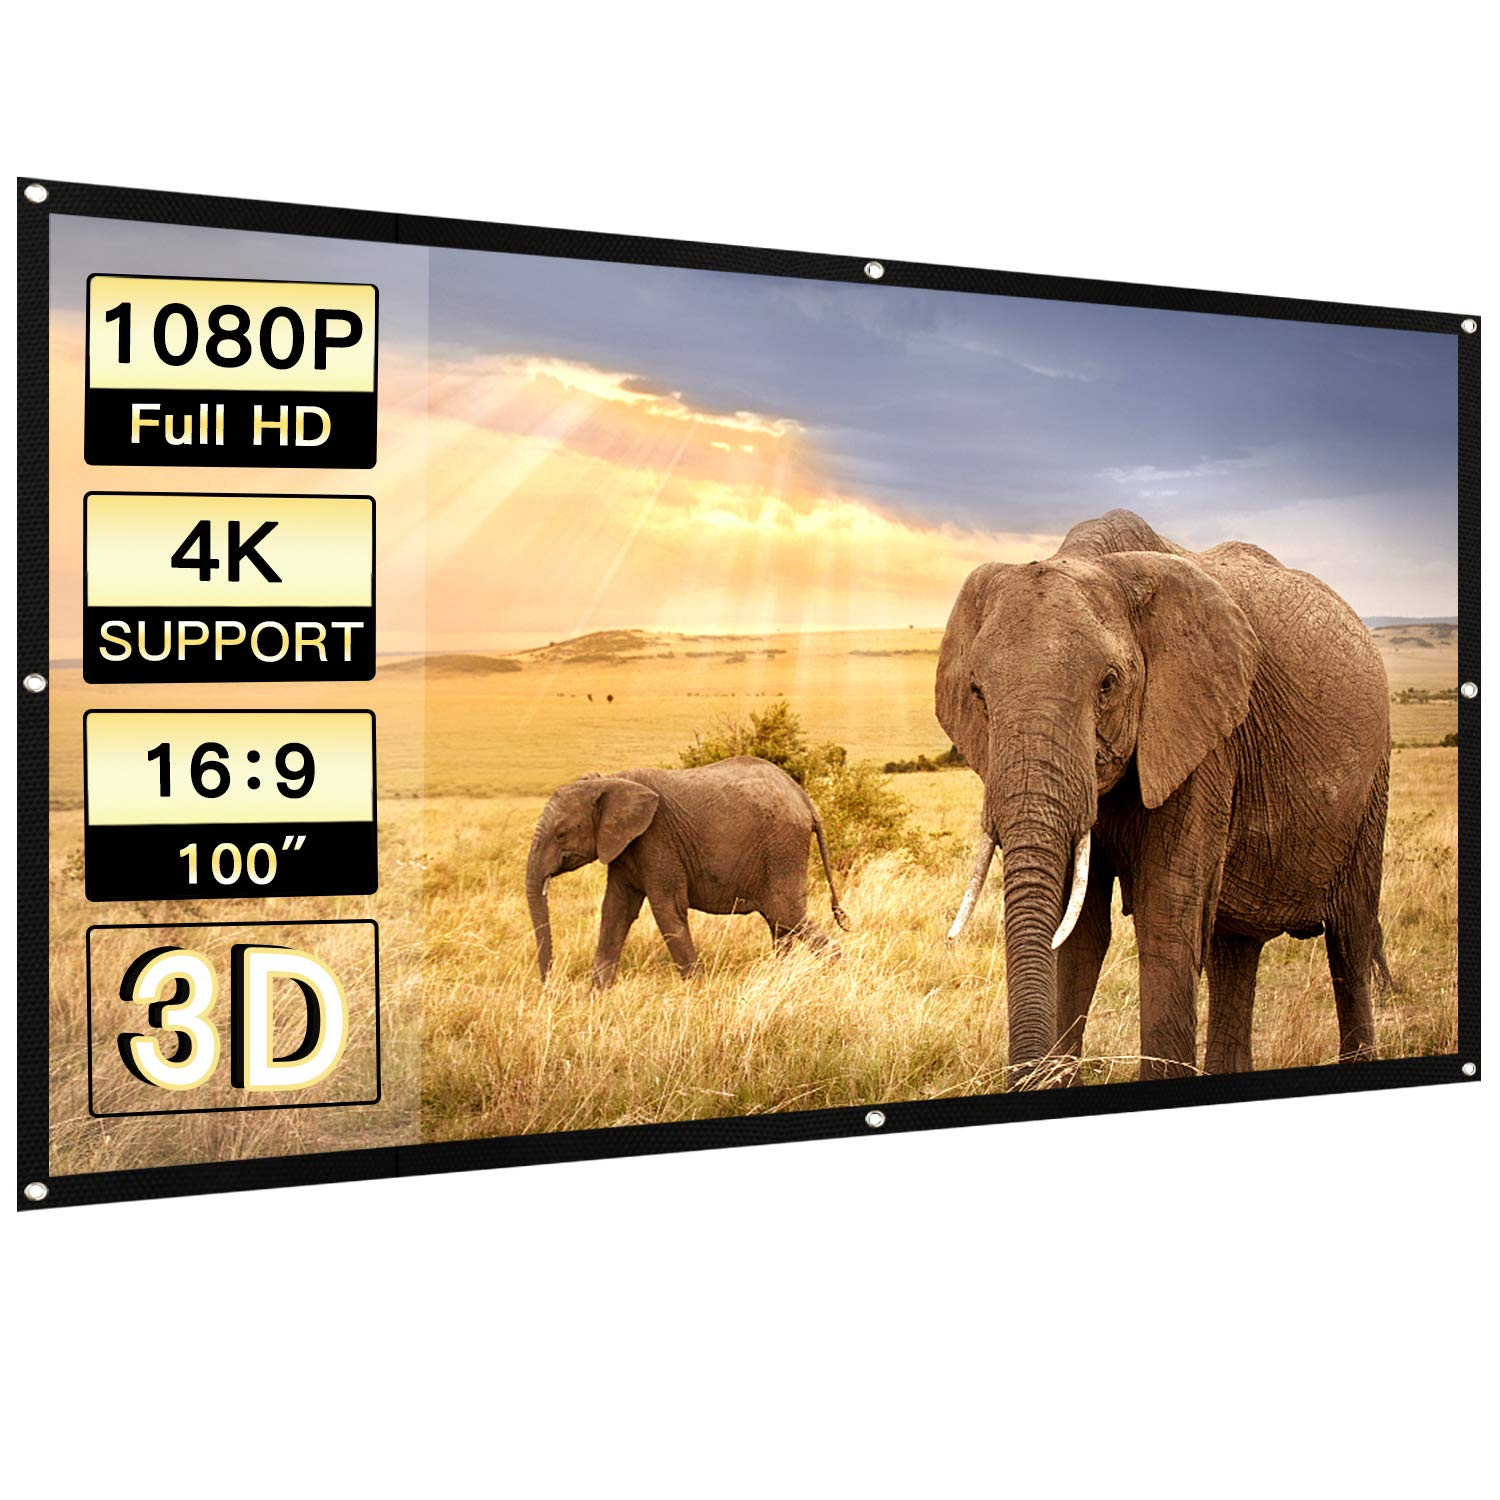 Perlesmith Portable Projector Screen 100 Inch 16:9 Widescreen for Outdoor Indoor Movie Home Theater Cinema, Rolled Up PVC Anti-Crease Diagonal Full HD 4K 3D Projection Screen Wrinkles Free